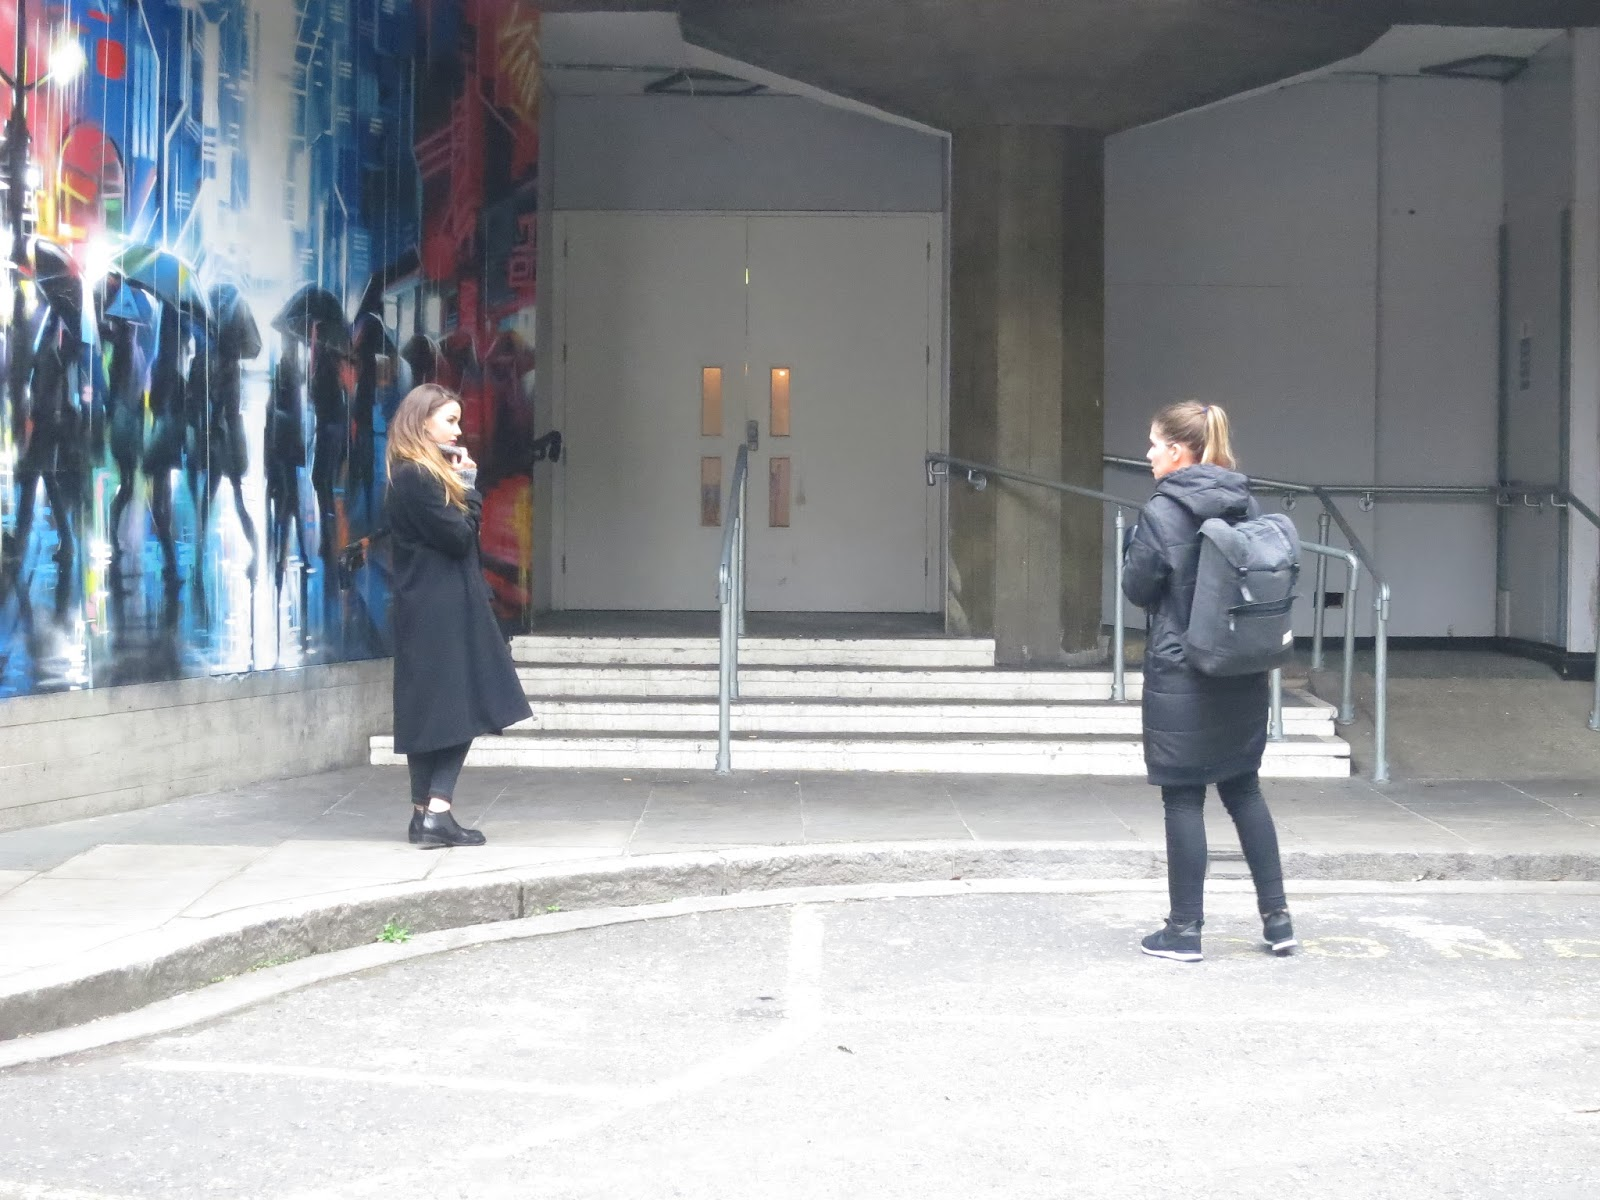 southbank-graffiti-london-photoshoot-fashion-blogger